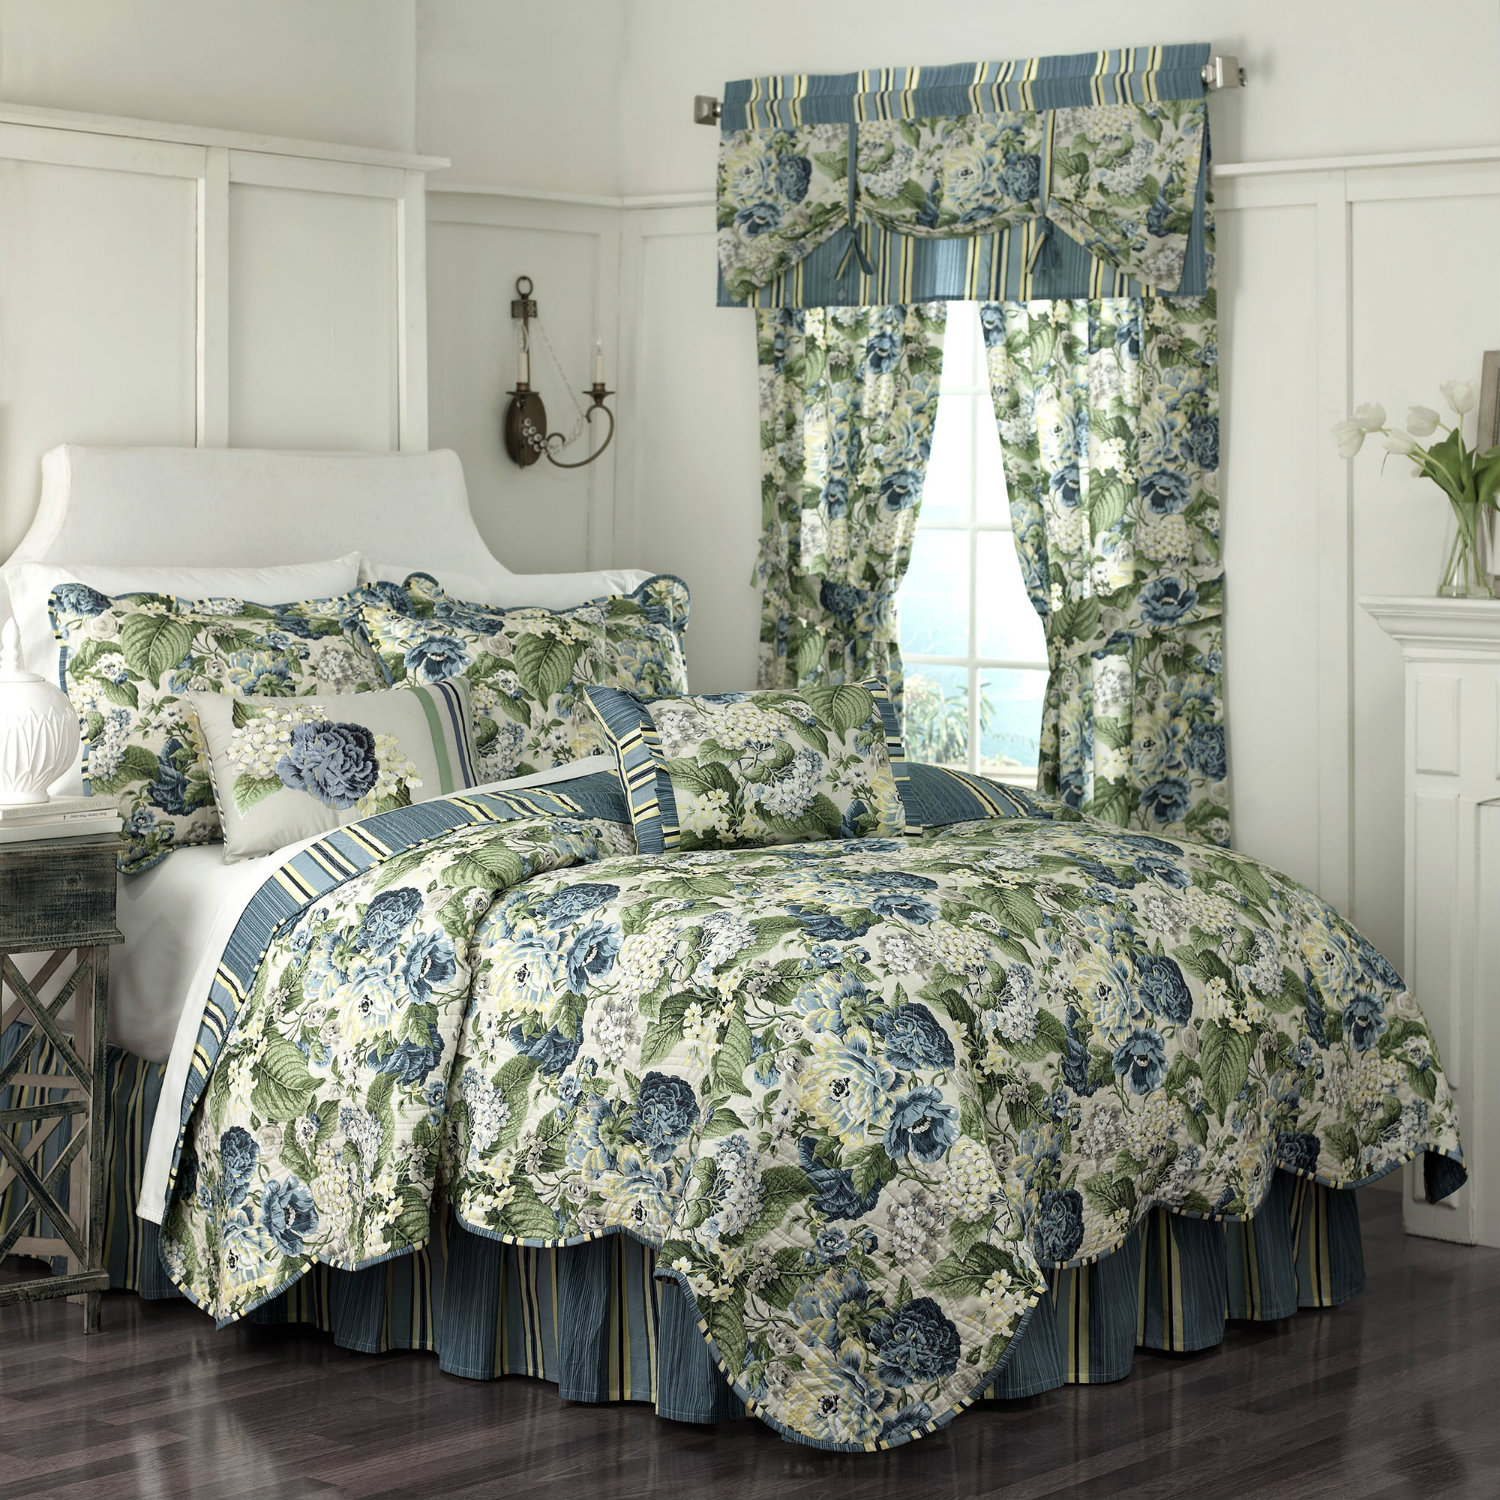 Floral Flourish By Waverly Bedding Beddingsuperstore Com